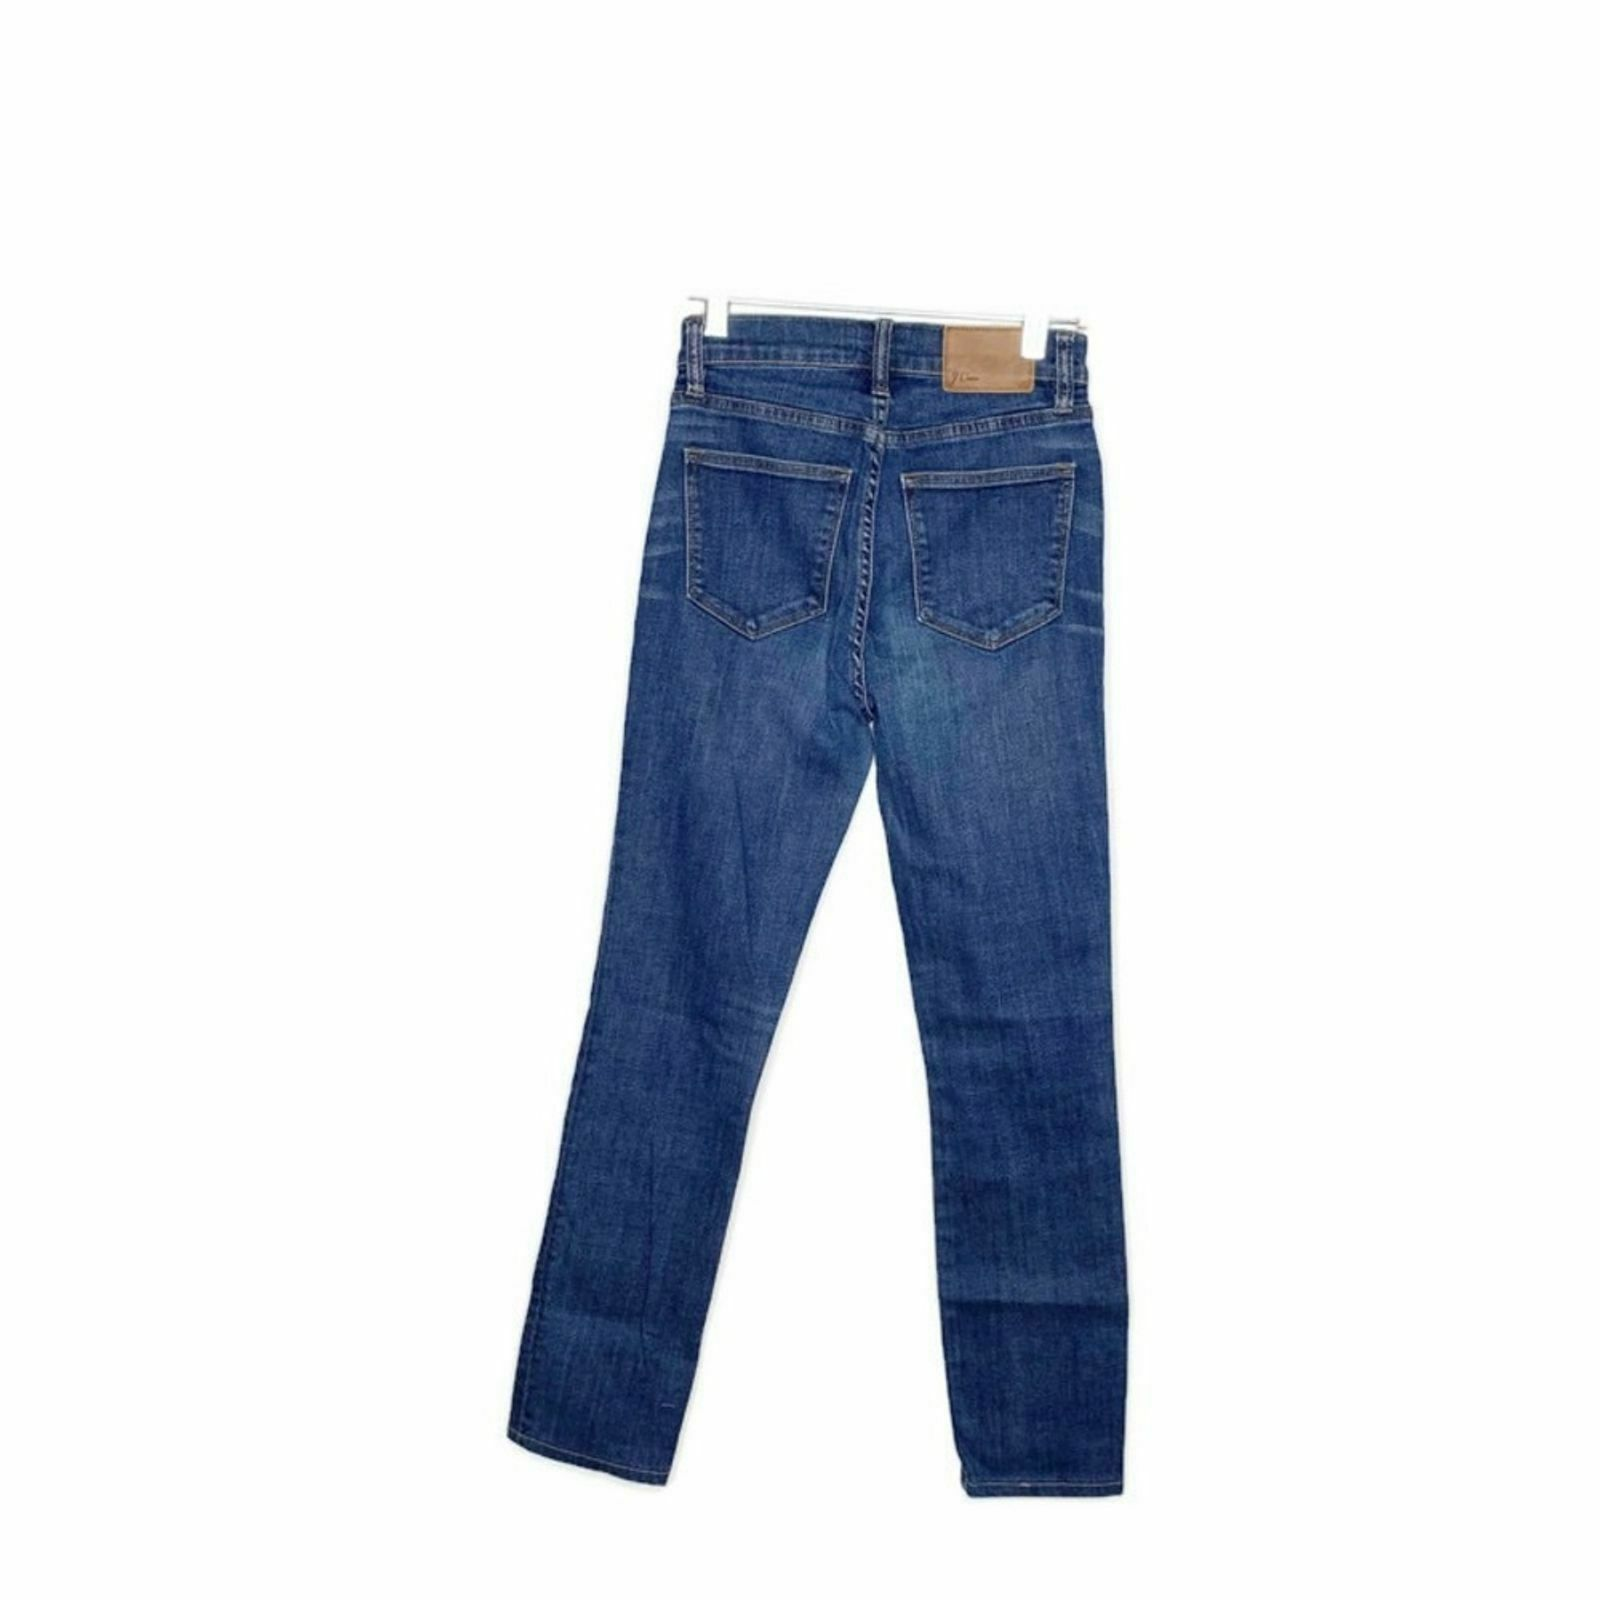 J. Crew Lookout High Rise Skinny Jean Travers Wash - image 3